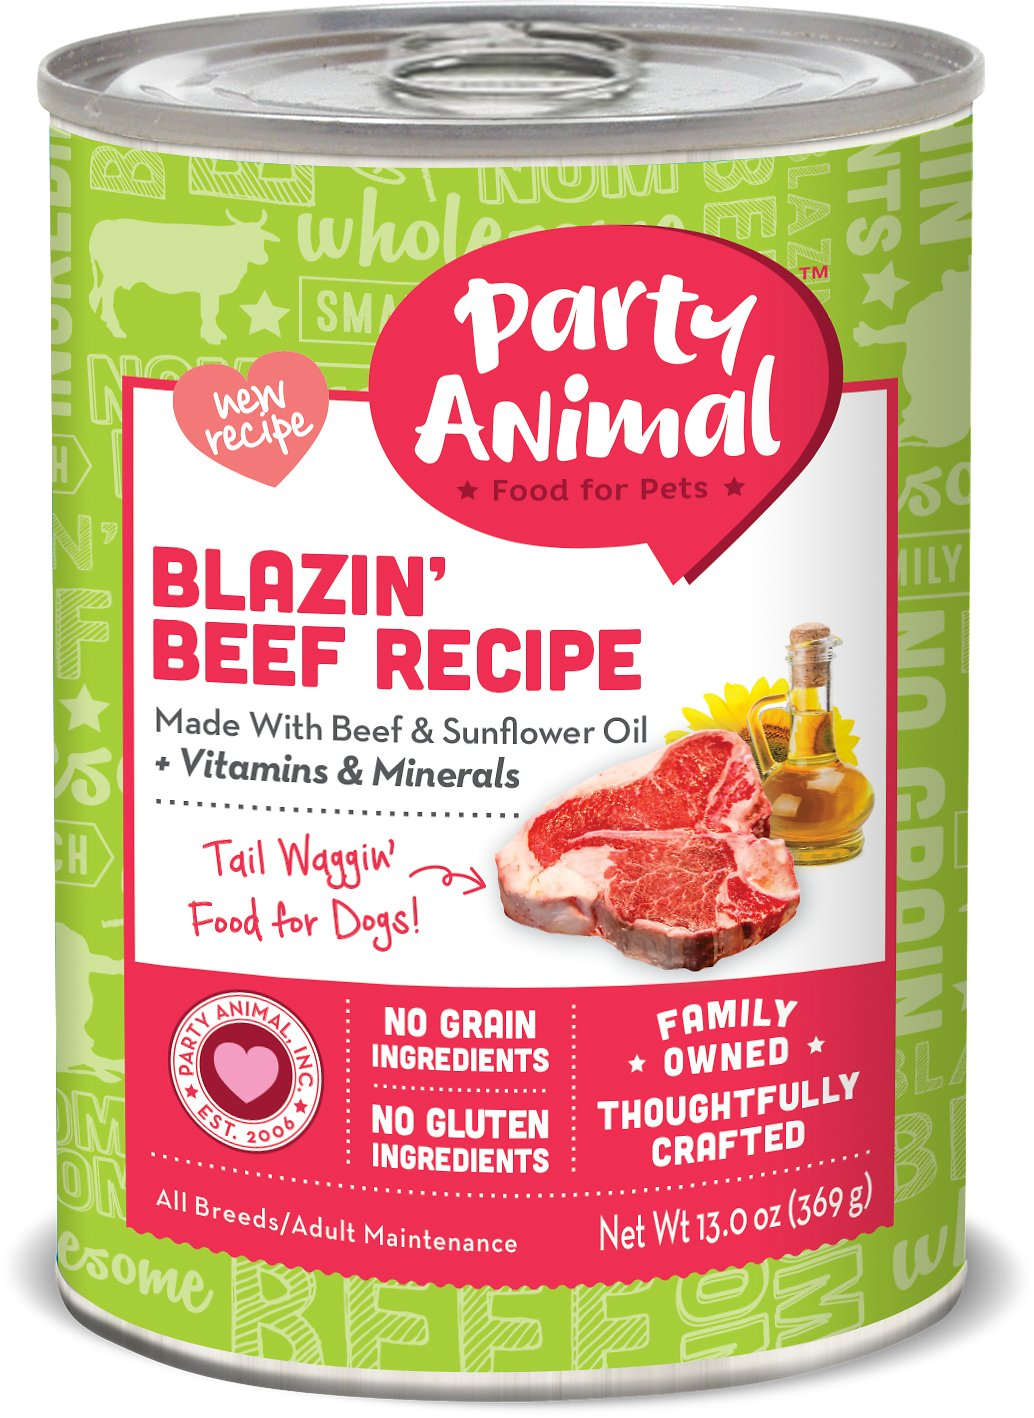 Party Animal Blazin' Beef Recipe Grain-Free Canned Dog Food, 13-oz